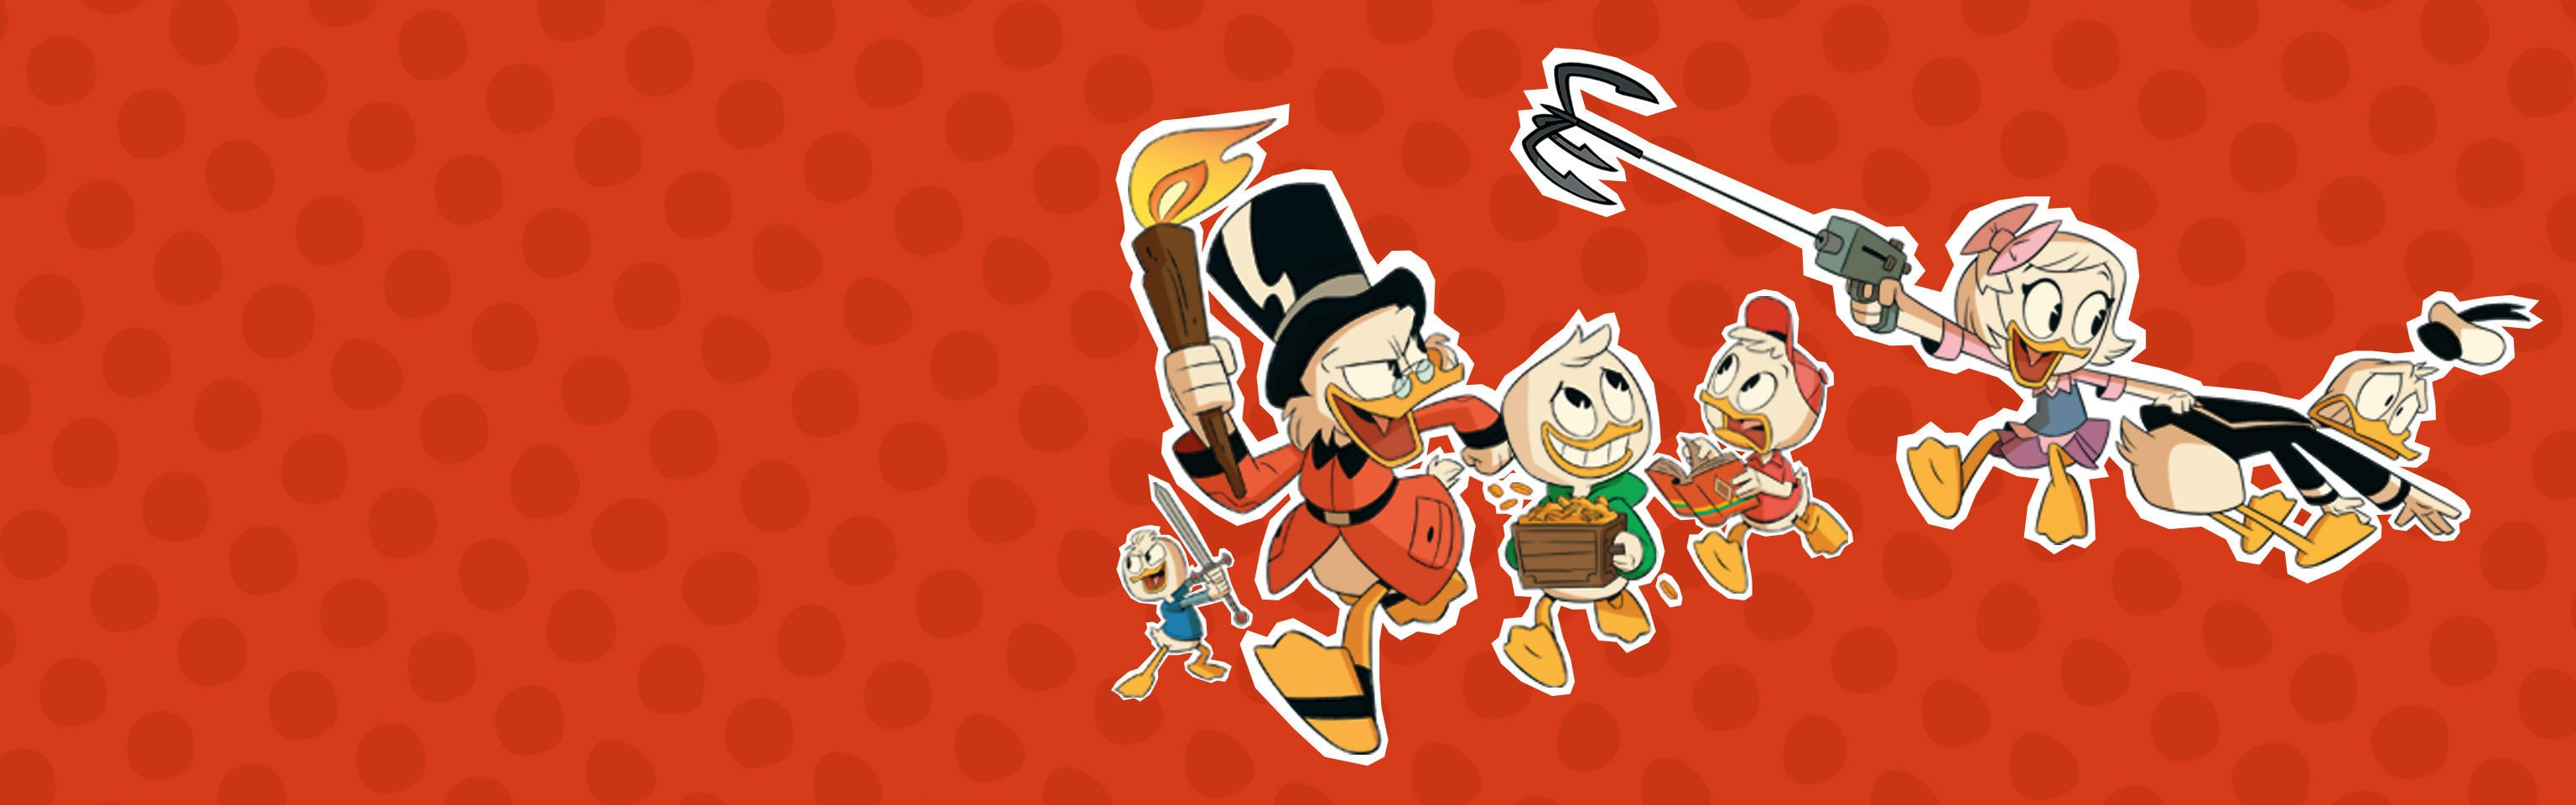 DuckTales Hero - Launch Competition